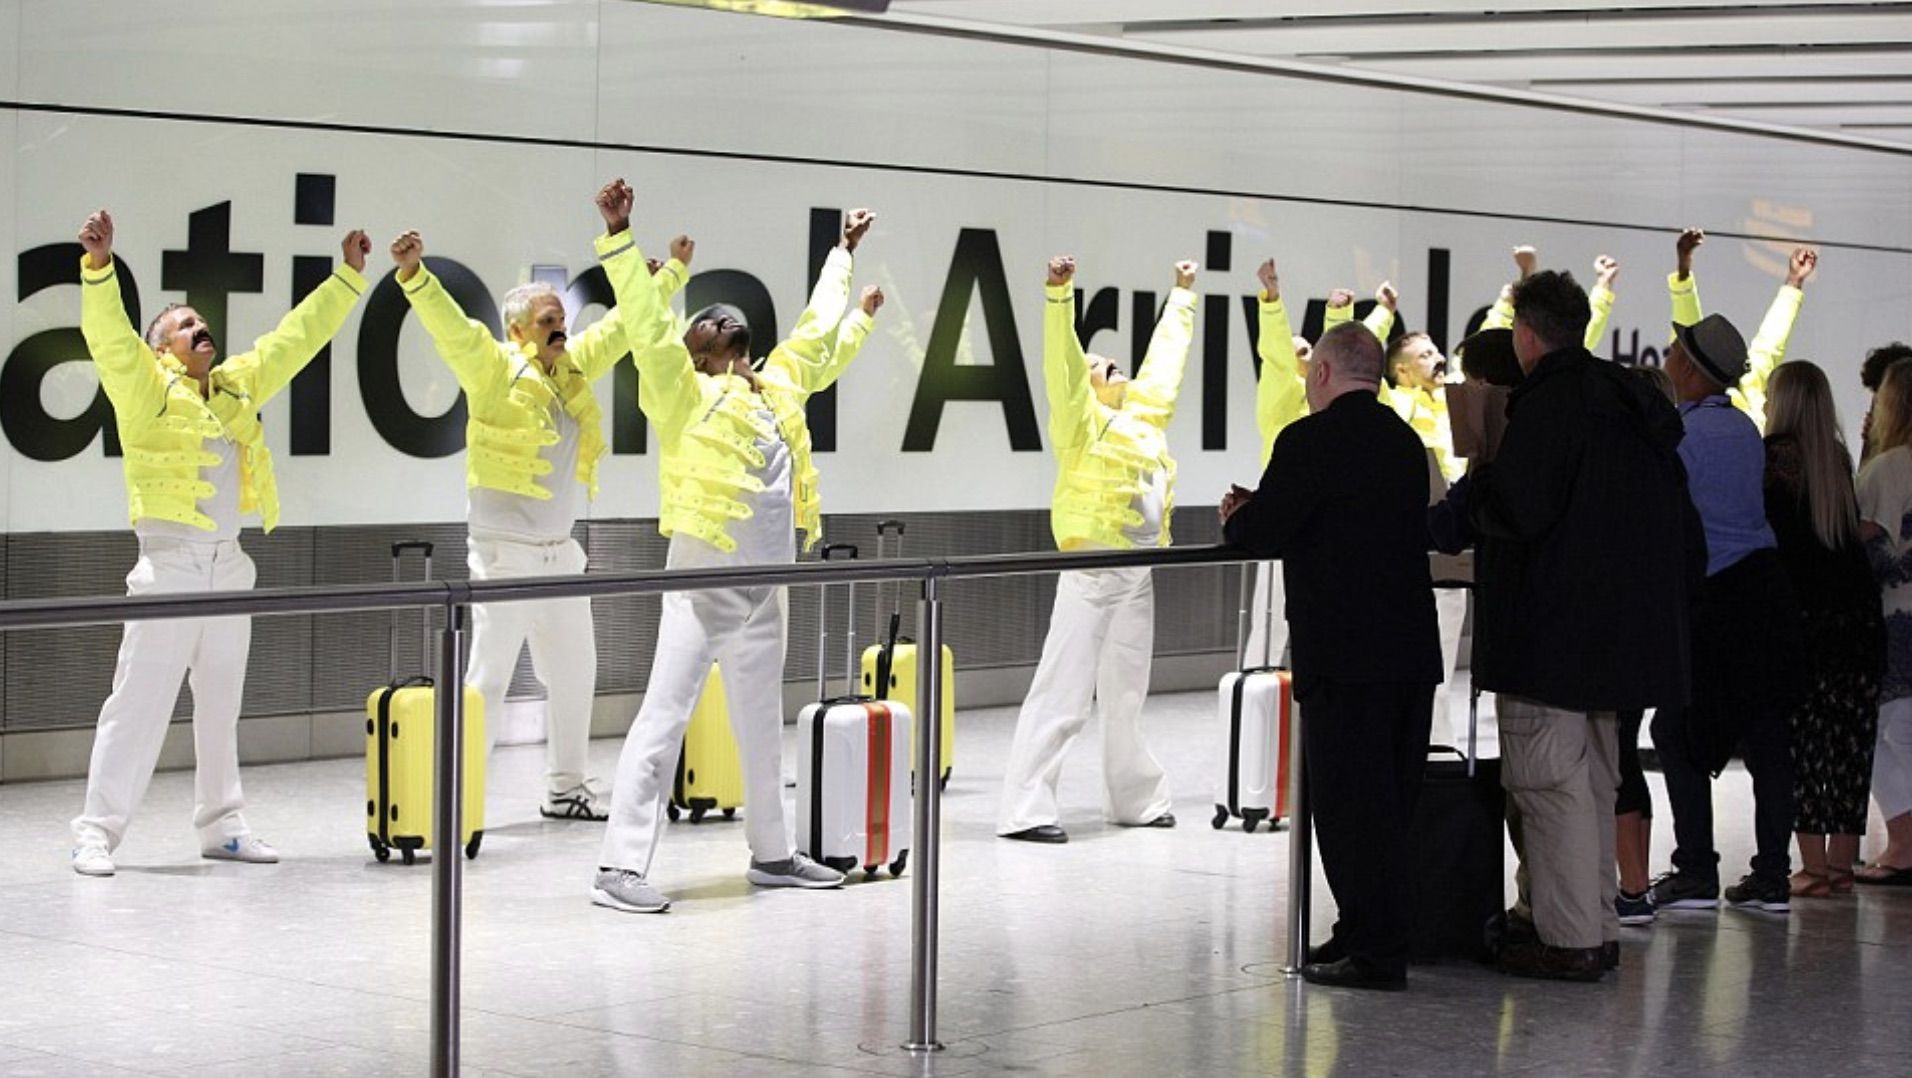 Baggage handlers at Heathrow in London celebrating Freddie Mercury